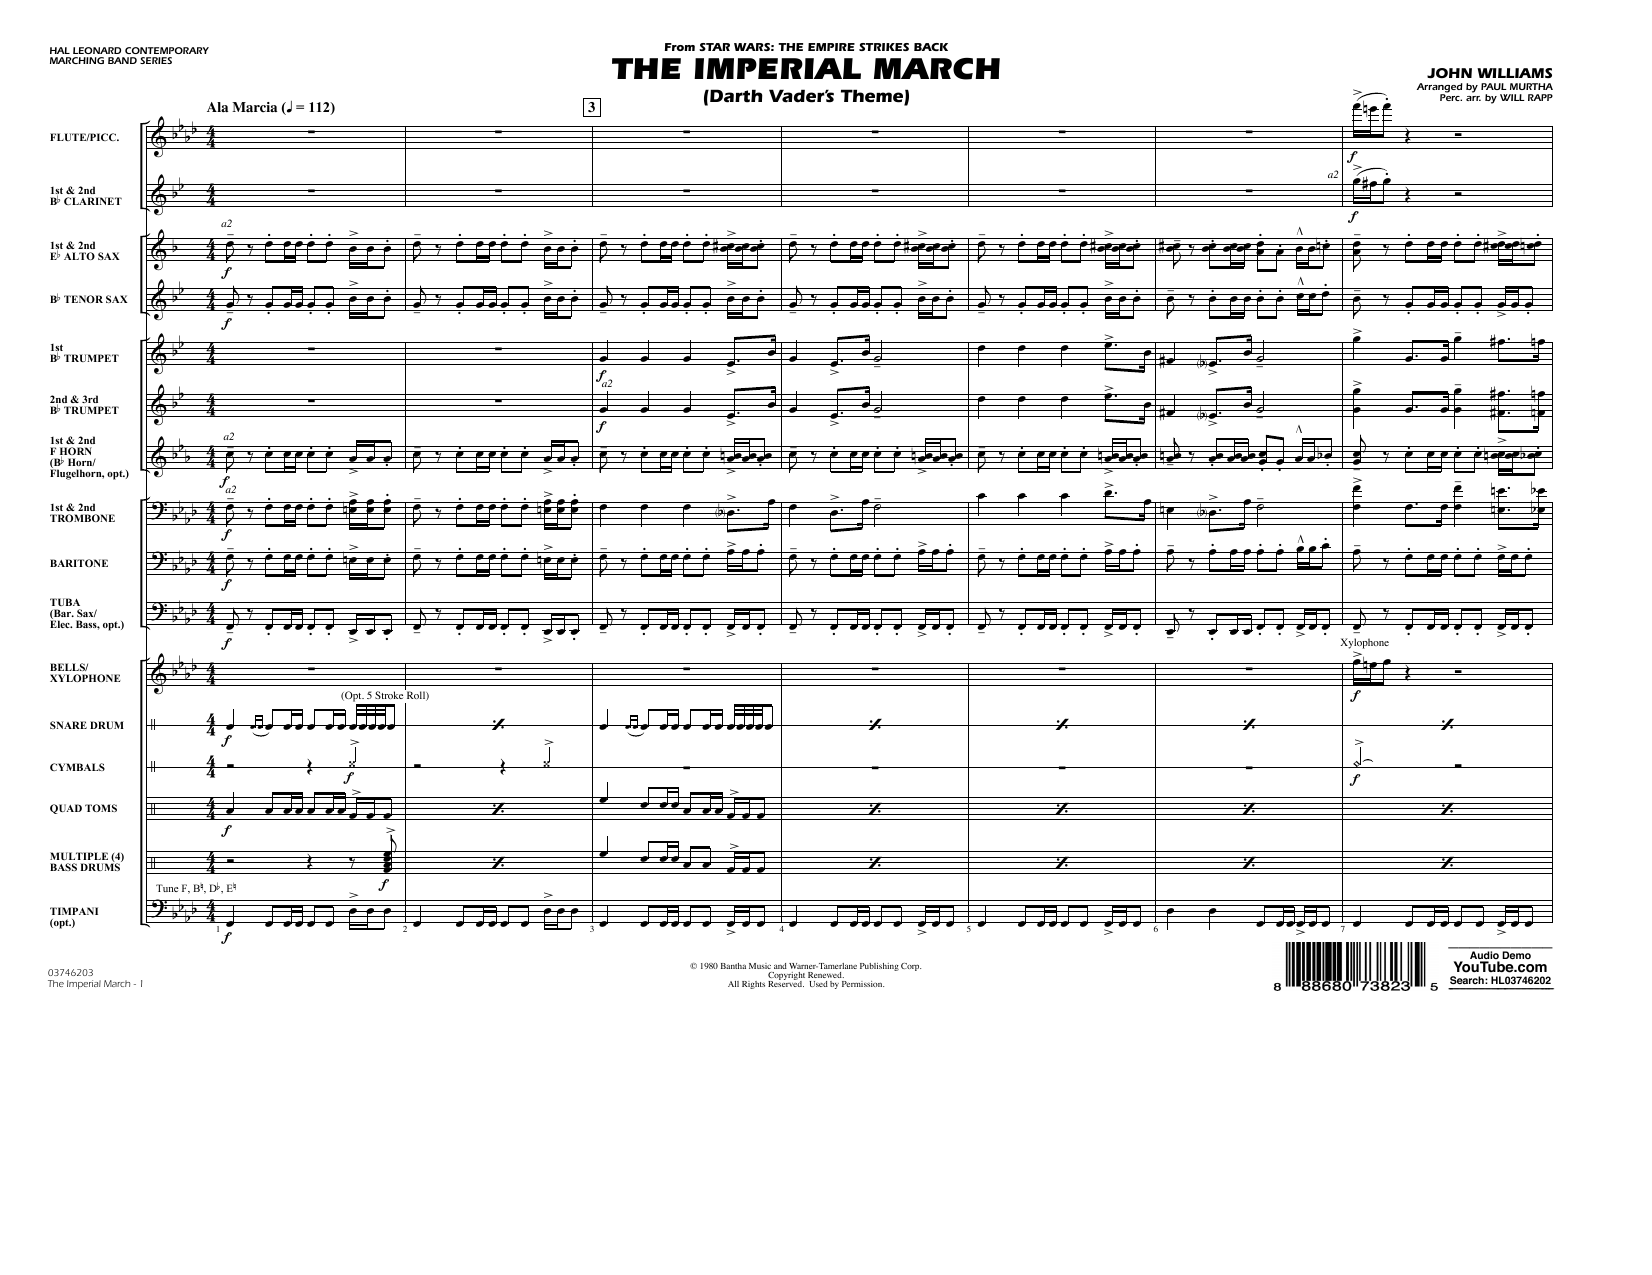 Paul Murtha The Imperial March (Darth Vader's Theme) - Conductor Score (Full Score) sheet music notes and chords. Download Printable PDF.